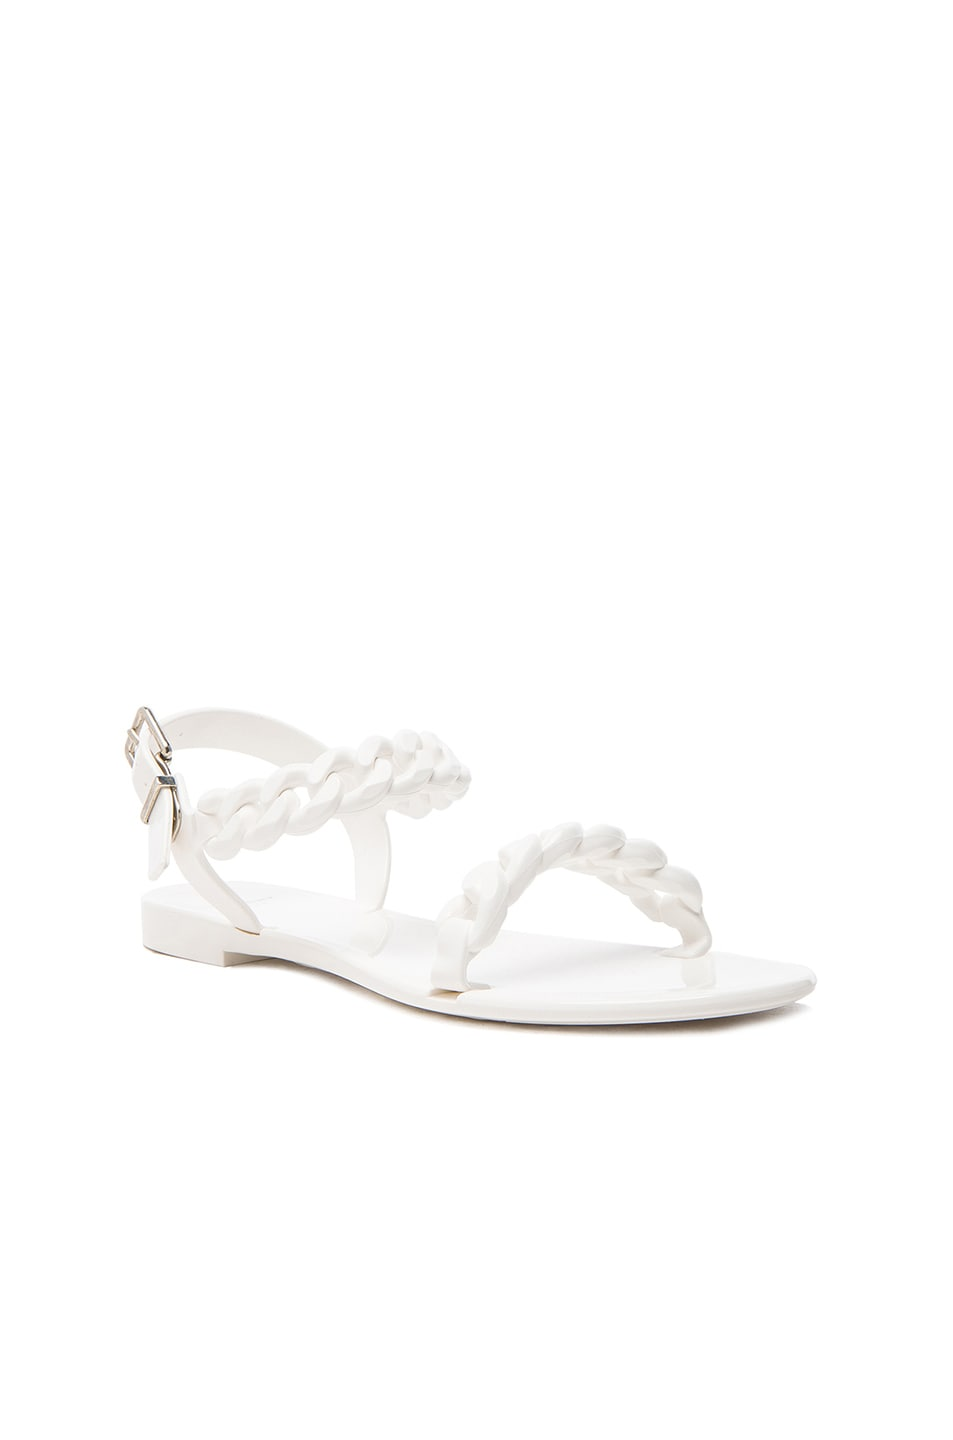 Image 2 of GIVENCHY Flat Jelly Chain Sandals in White